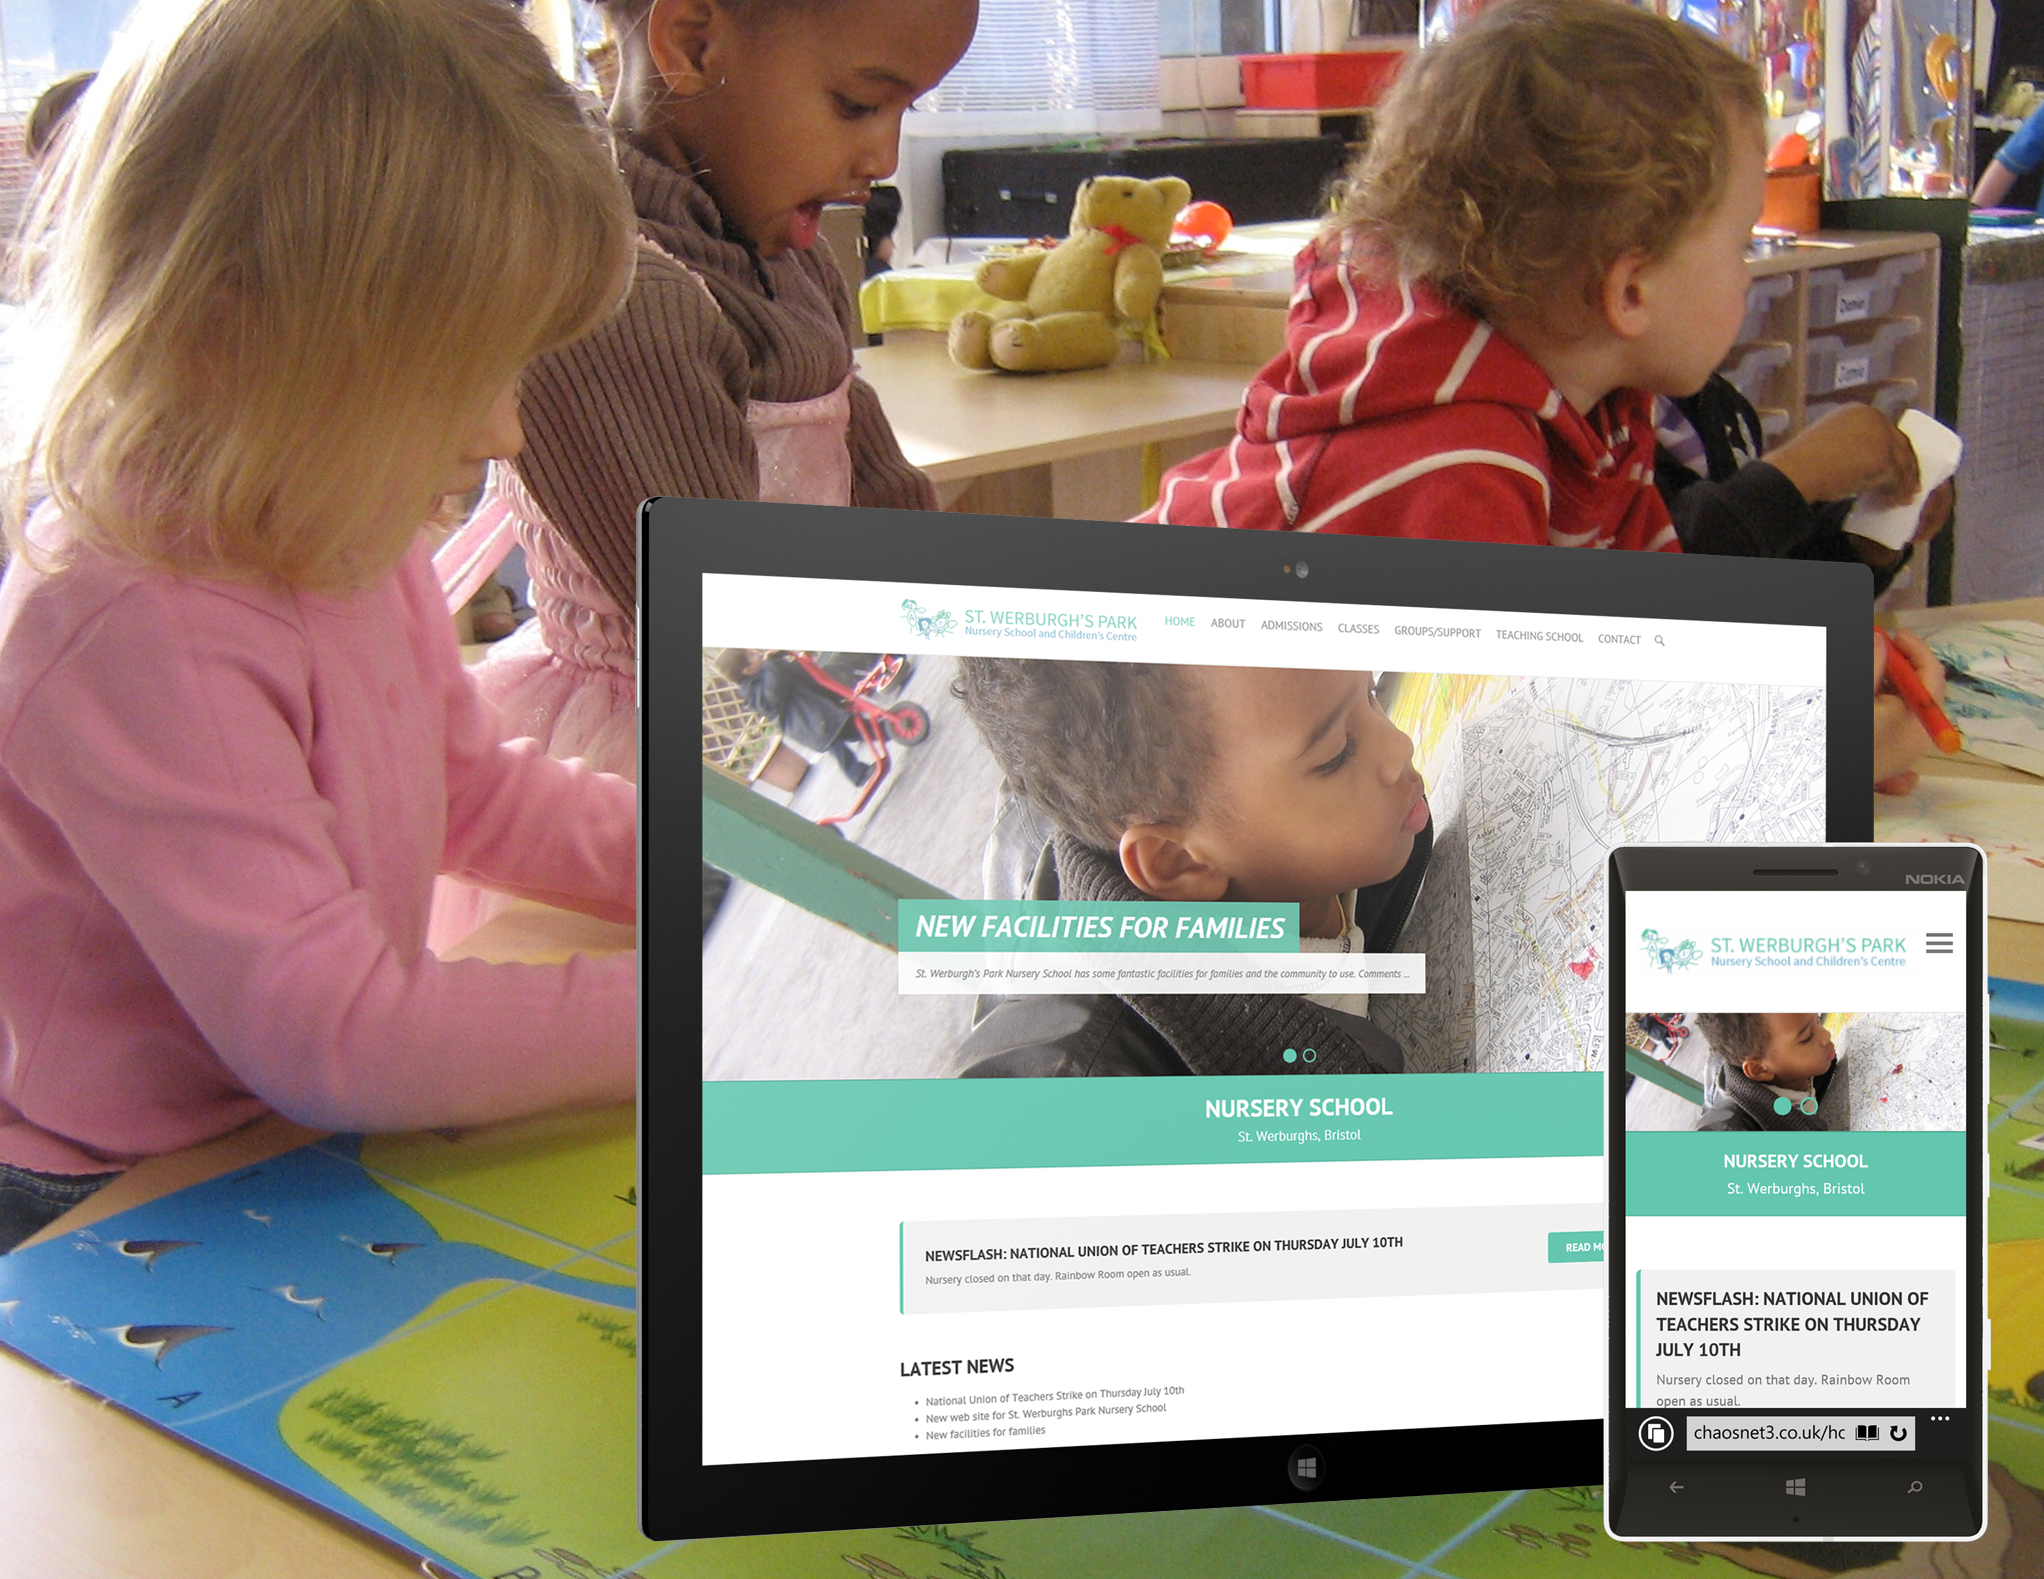 Chaos Created launches new site for St. Werburghs Park Nursery